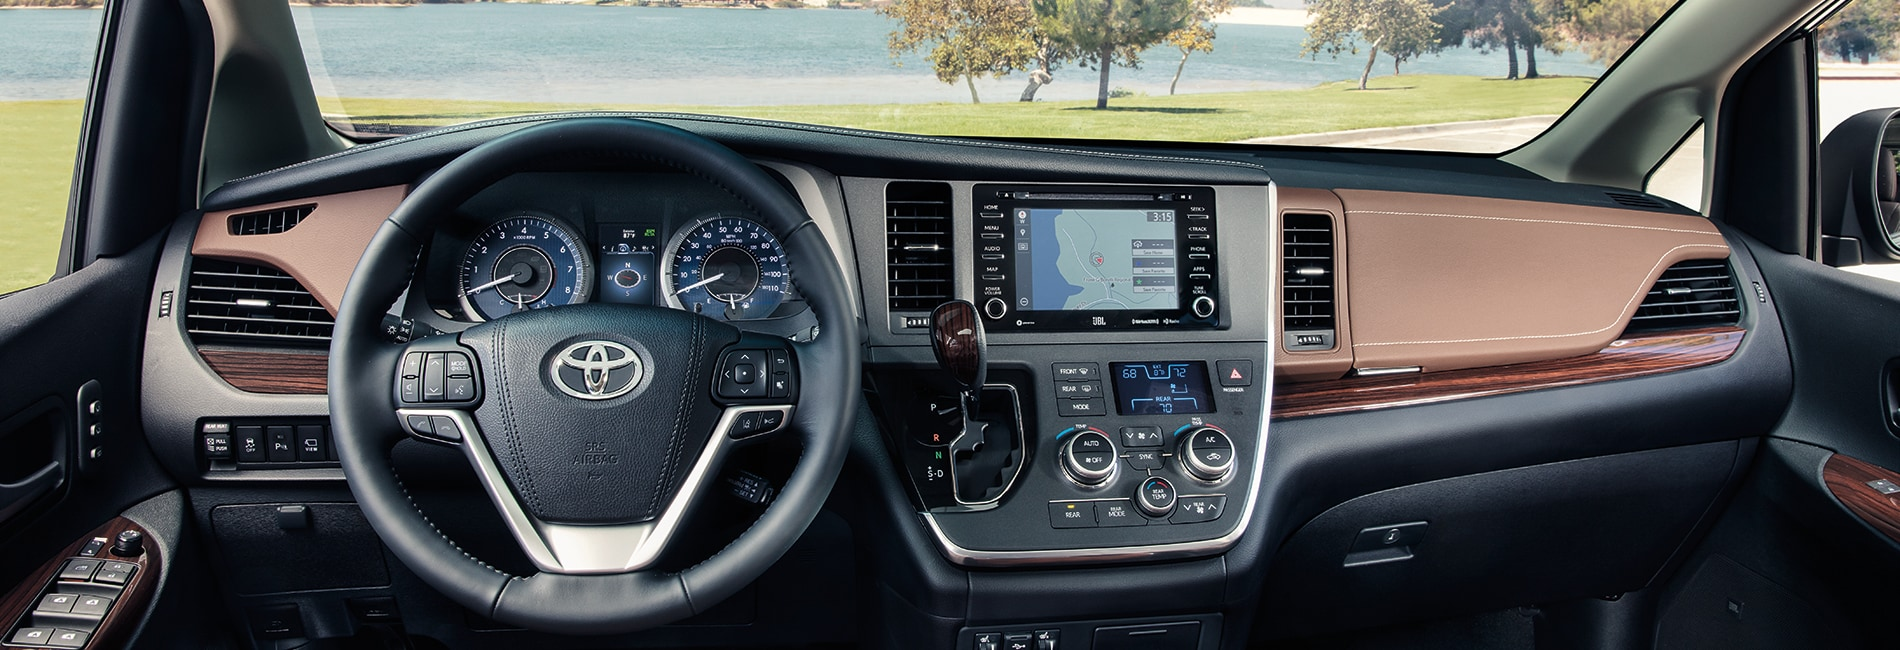 Toyota Sienna Interior Vehicle Features